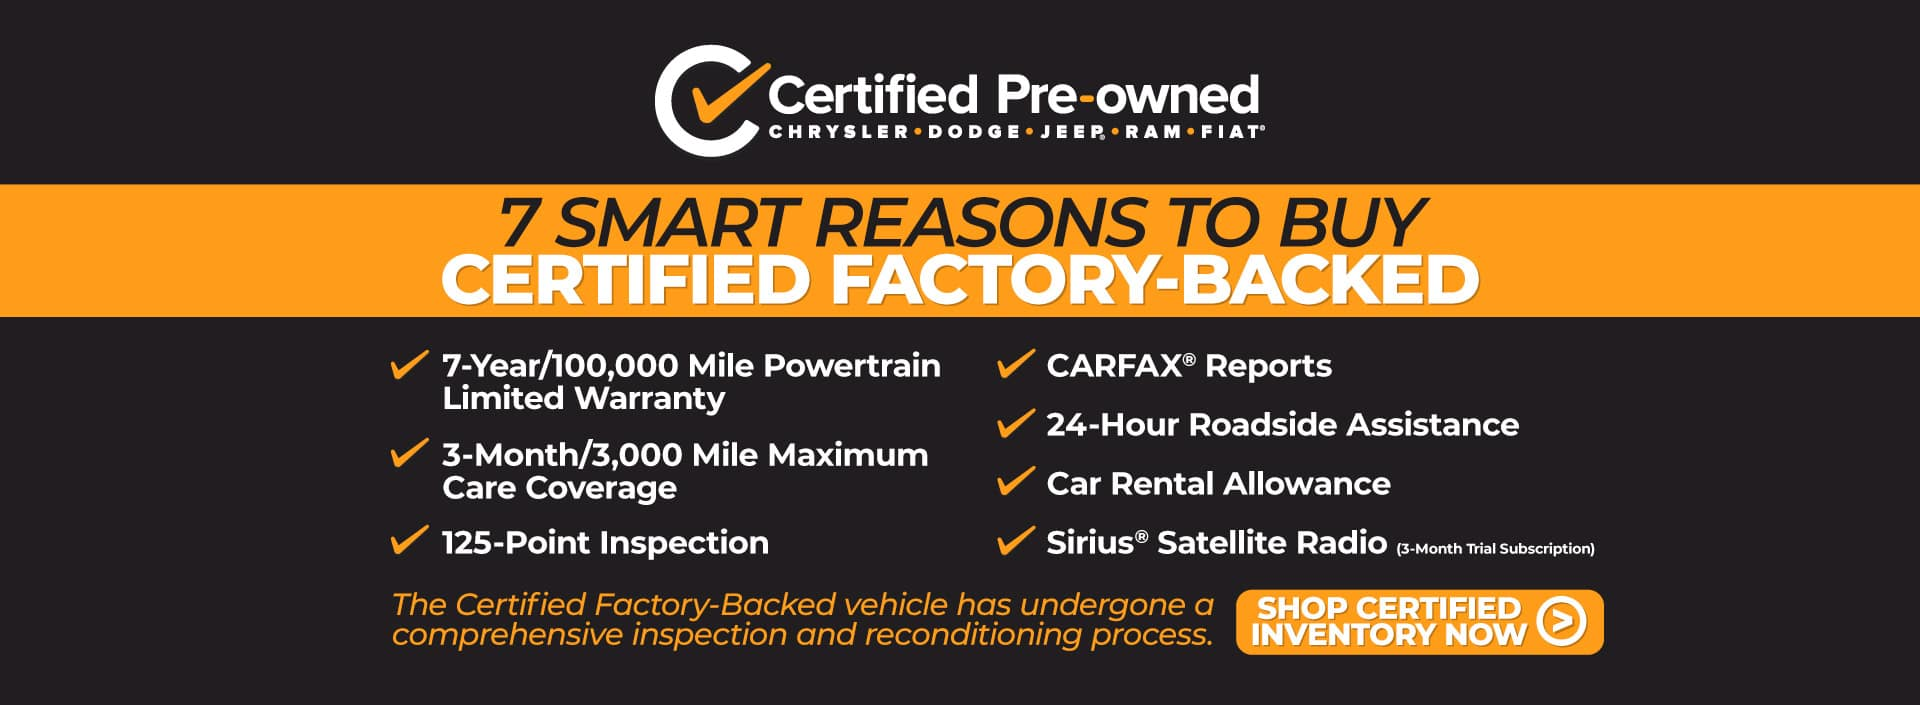 7 Smart Reasons to Buy Certified Factory-Backed - Shop CPO Inventory Now